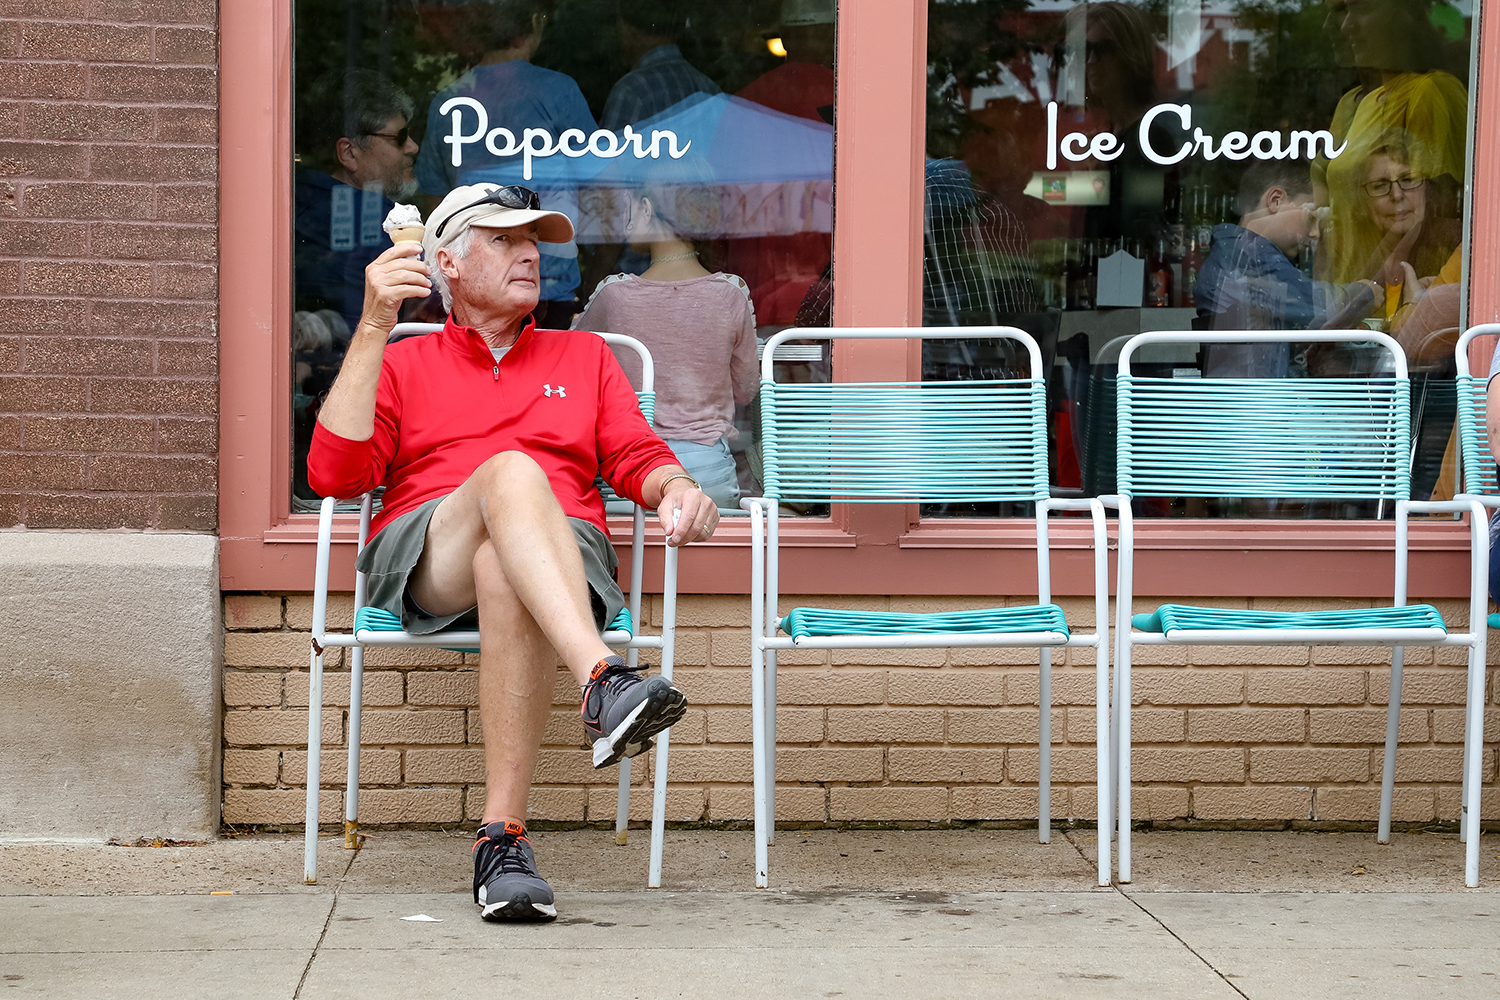 Robert Buckley of Marion, IA enjoys an ice cream cone while watching people walk by during the New Bohemia Arts Festival in Cedar Rapids, IA on Sunday, Sep. 1, 2019.